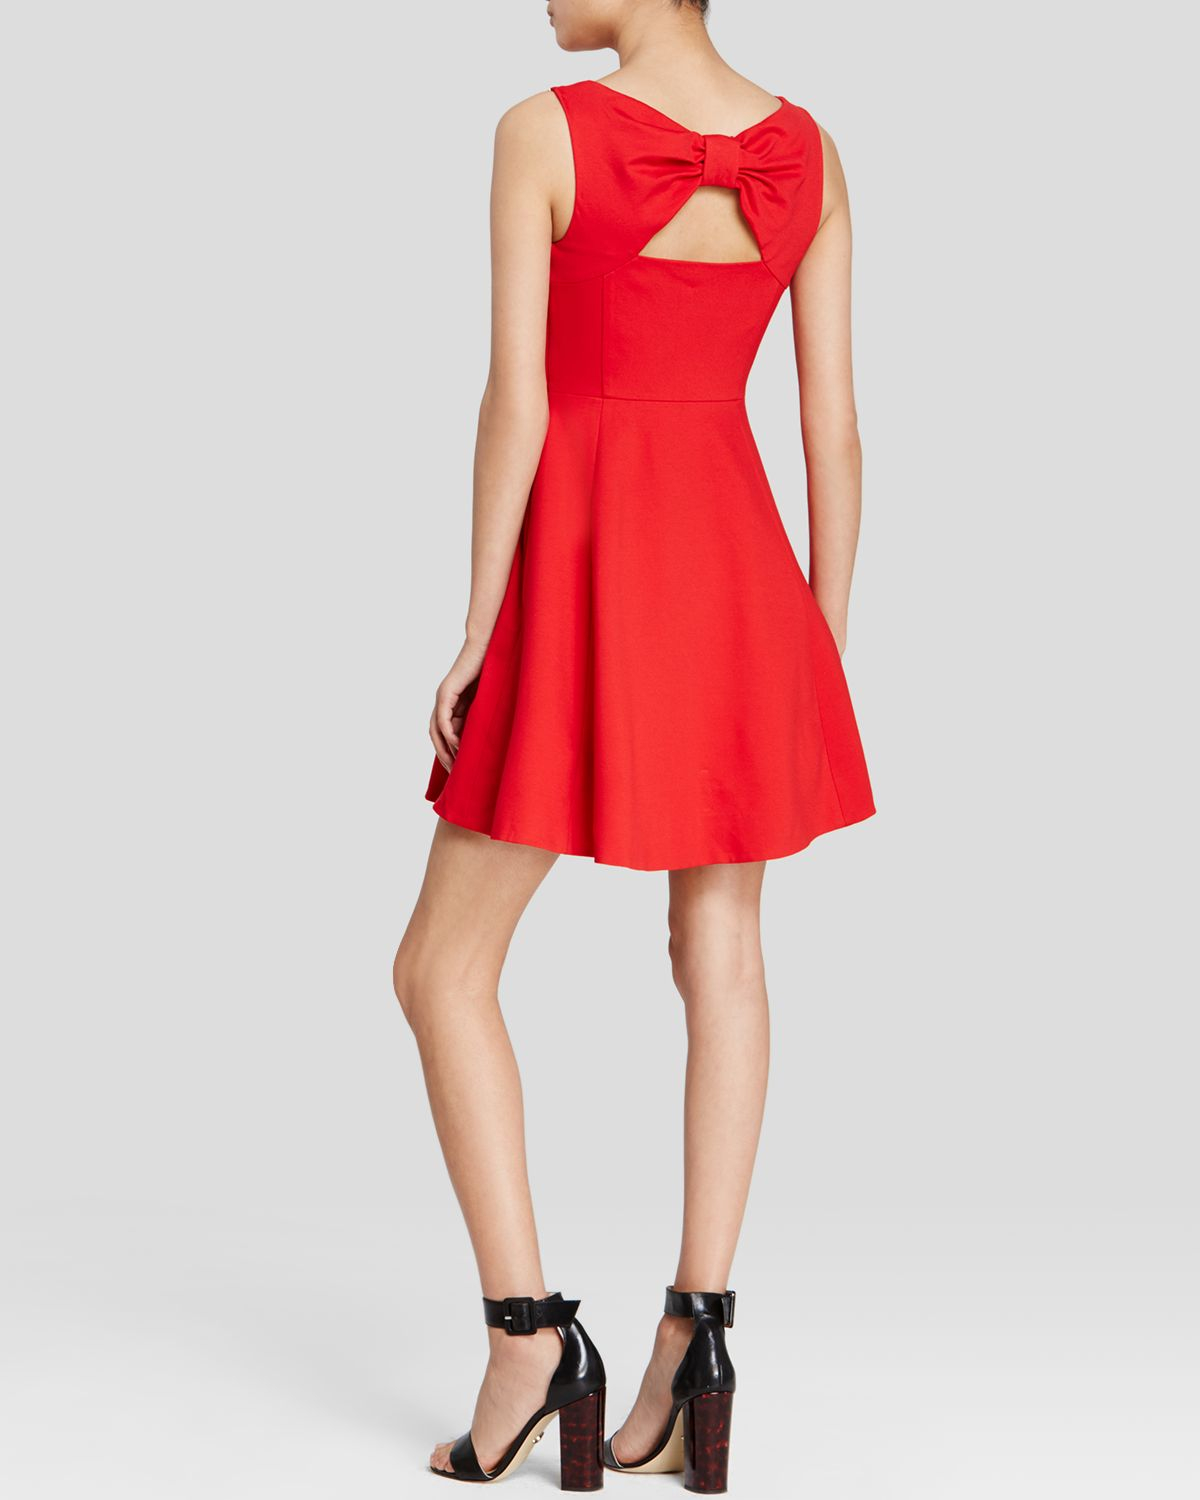 Kate spade new york Ponte Bow Back Dress in Red | Lyst